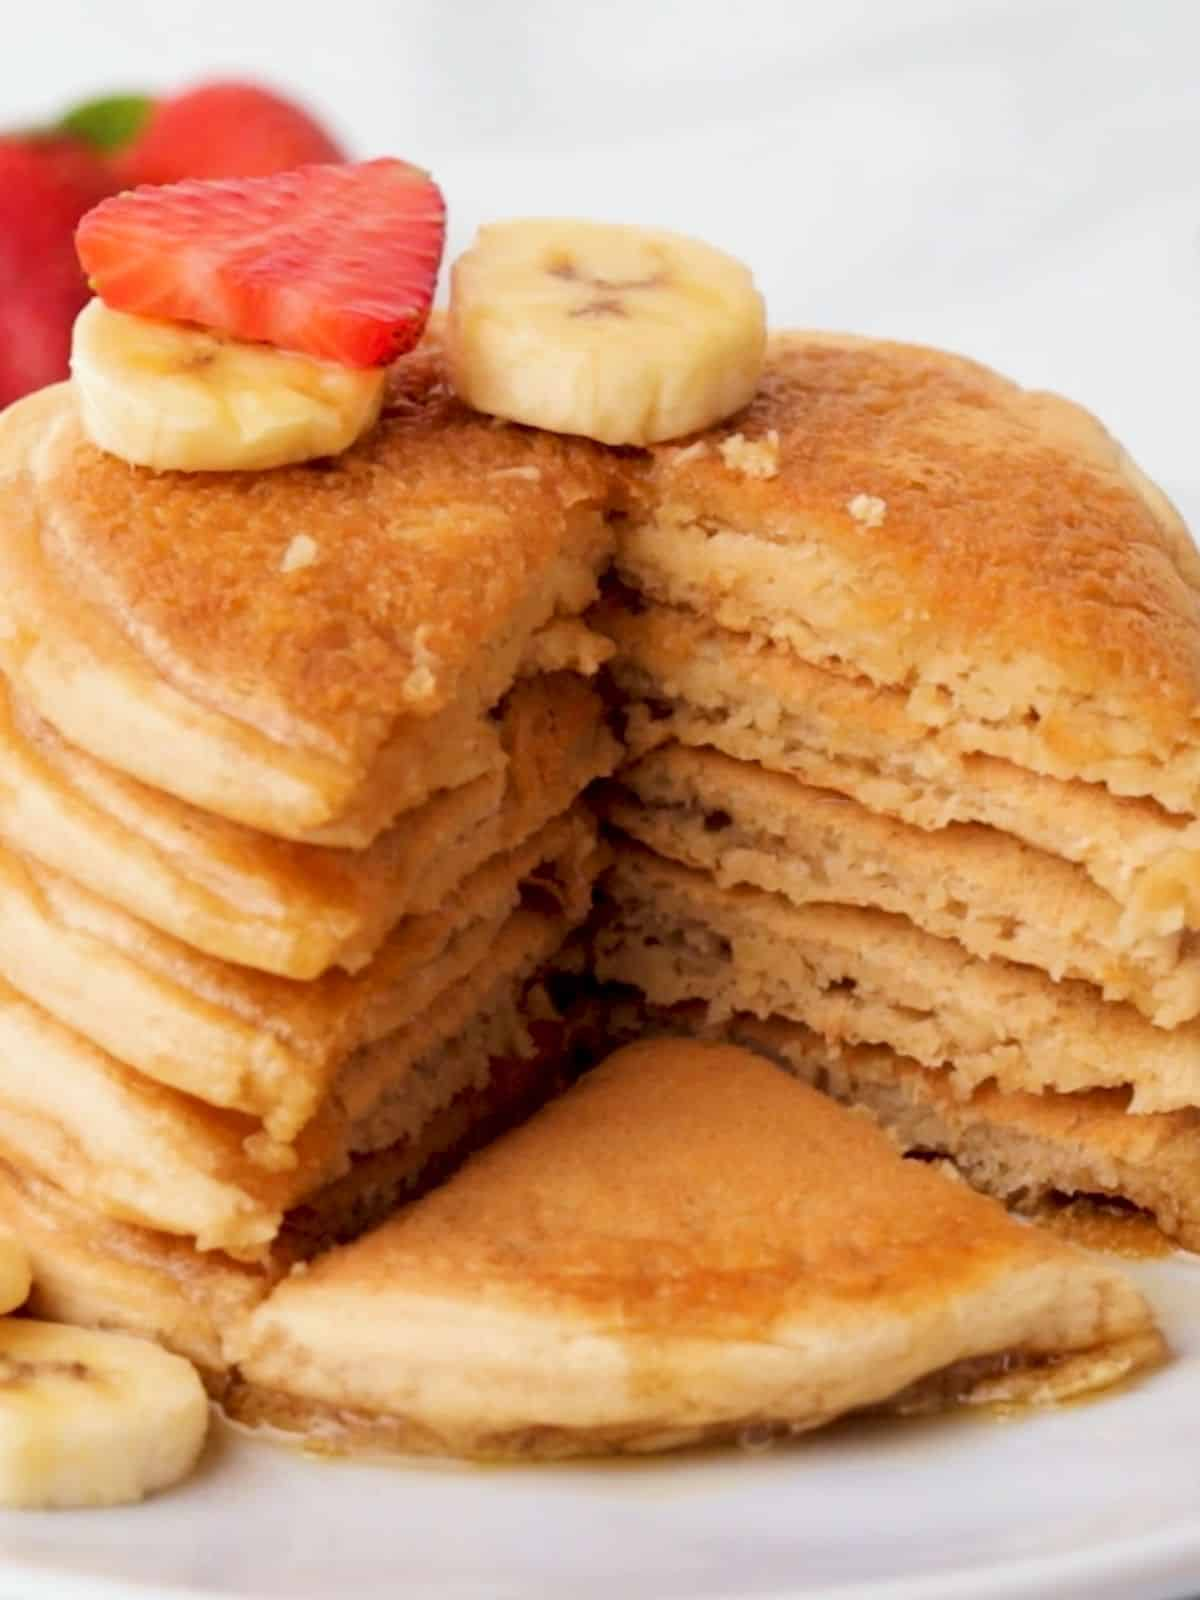 Pancake stack with triangular wedge cut through the stack.